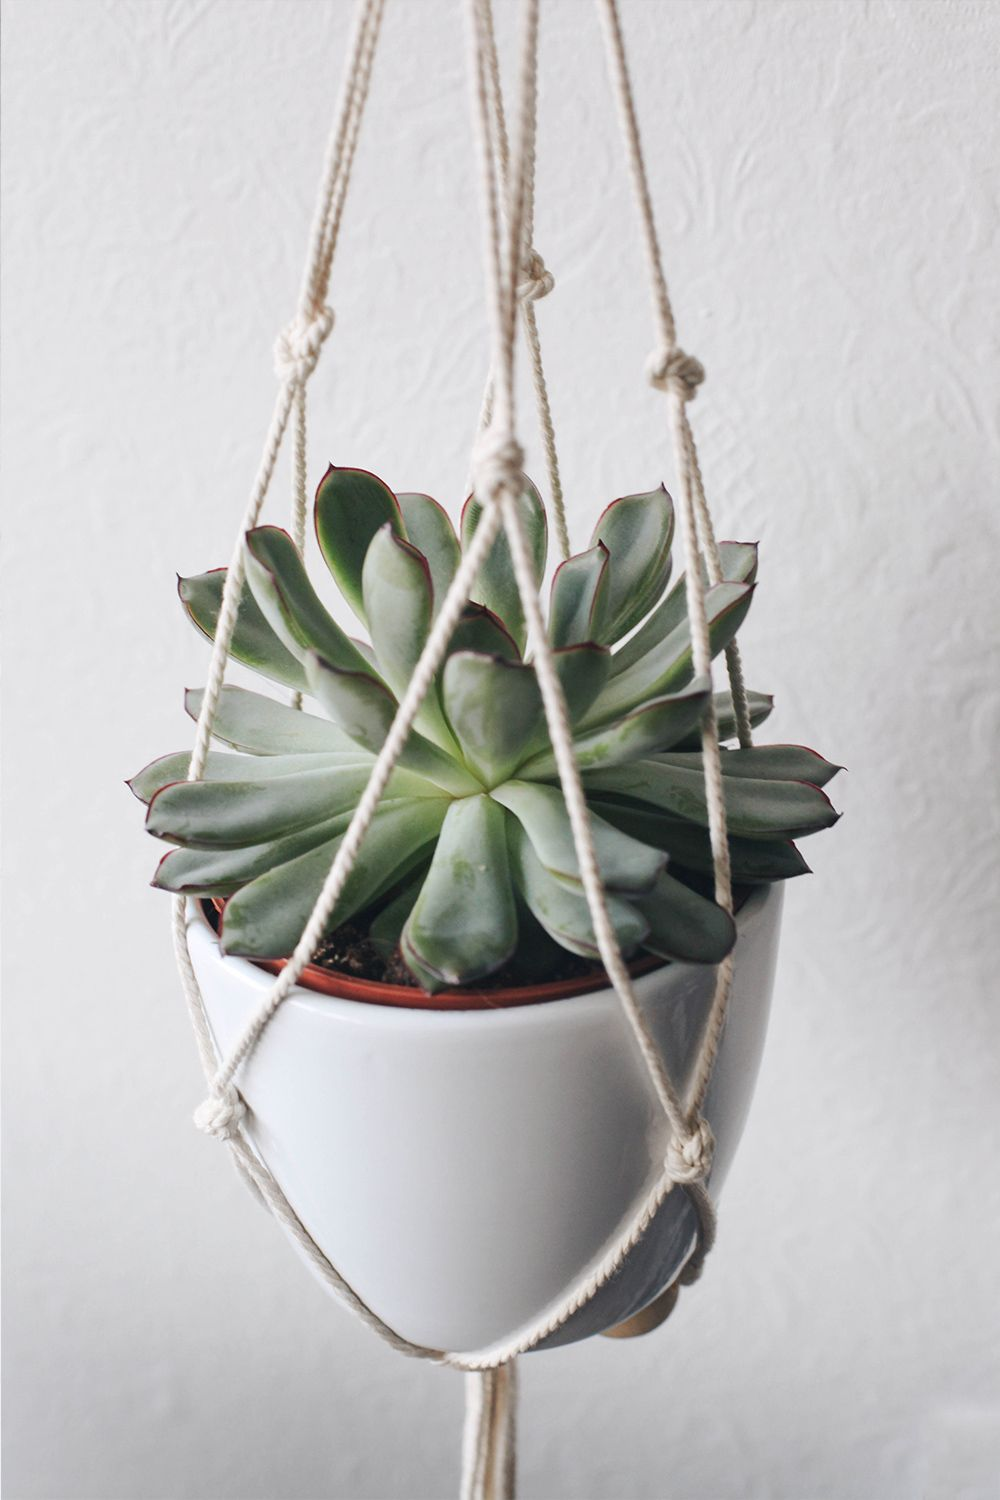 Diy suspension macram pour plante moodfeather blog blog moodfeather pinterest - Faire macrame suspension ...